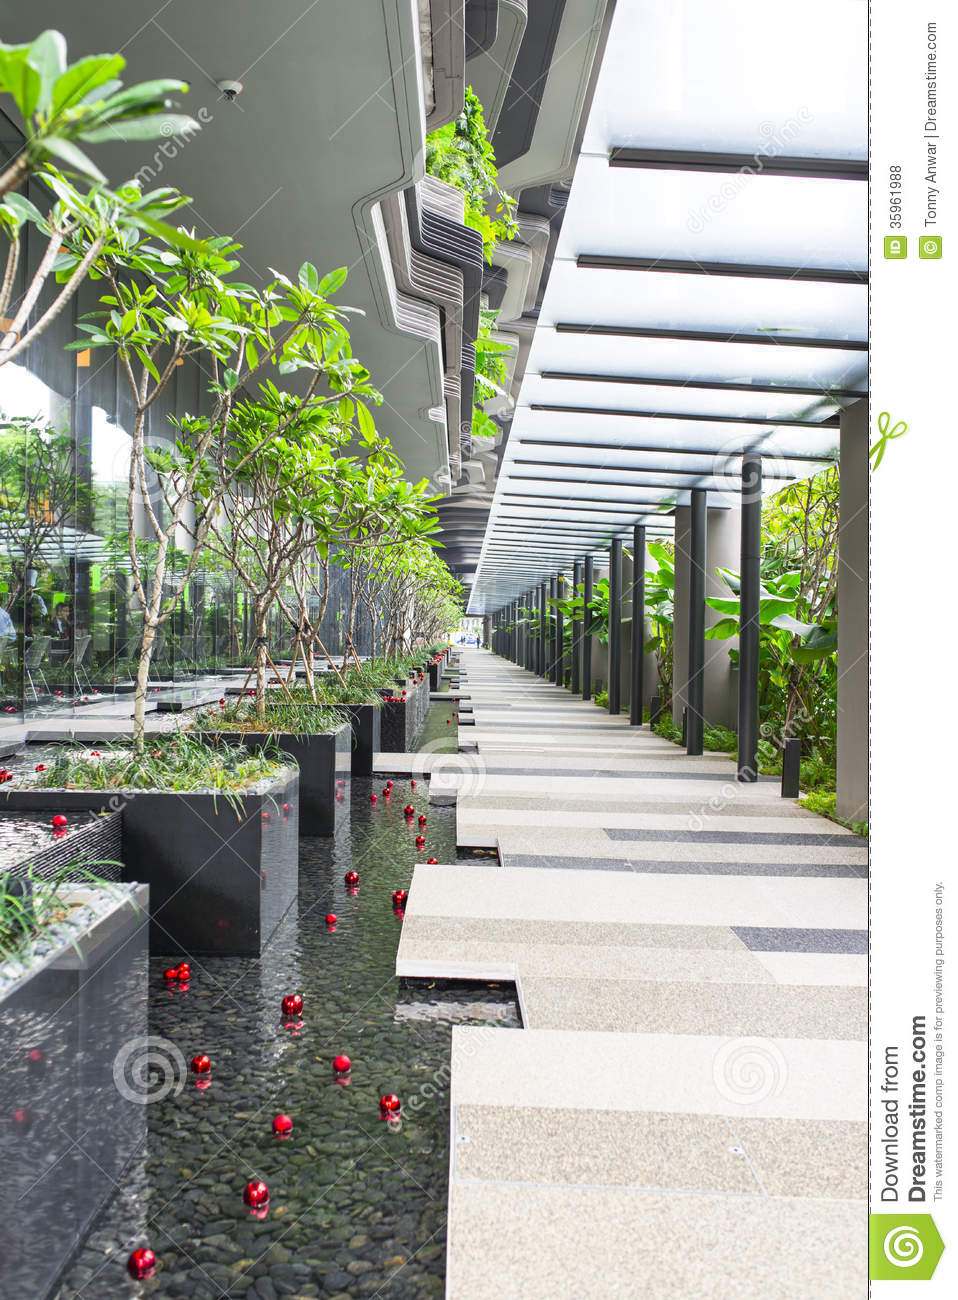 Sheltered Walkway Royalty Free Stock Photos Image 35961988